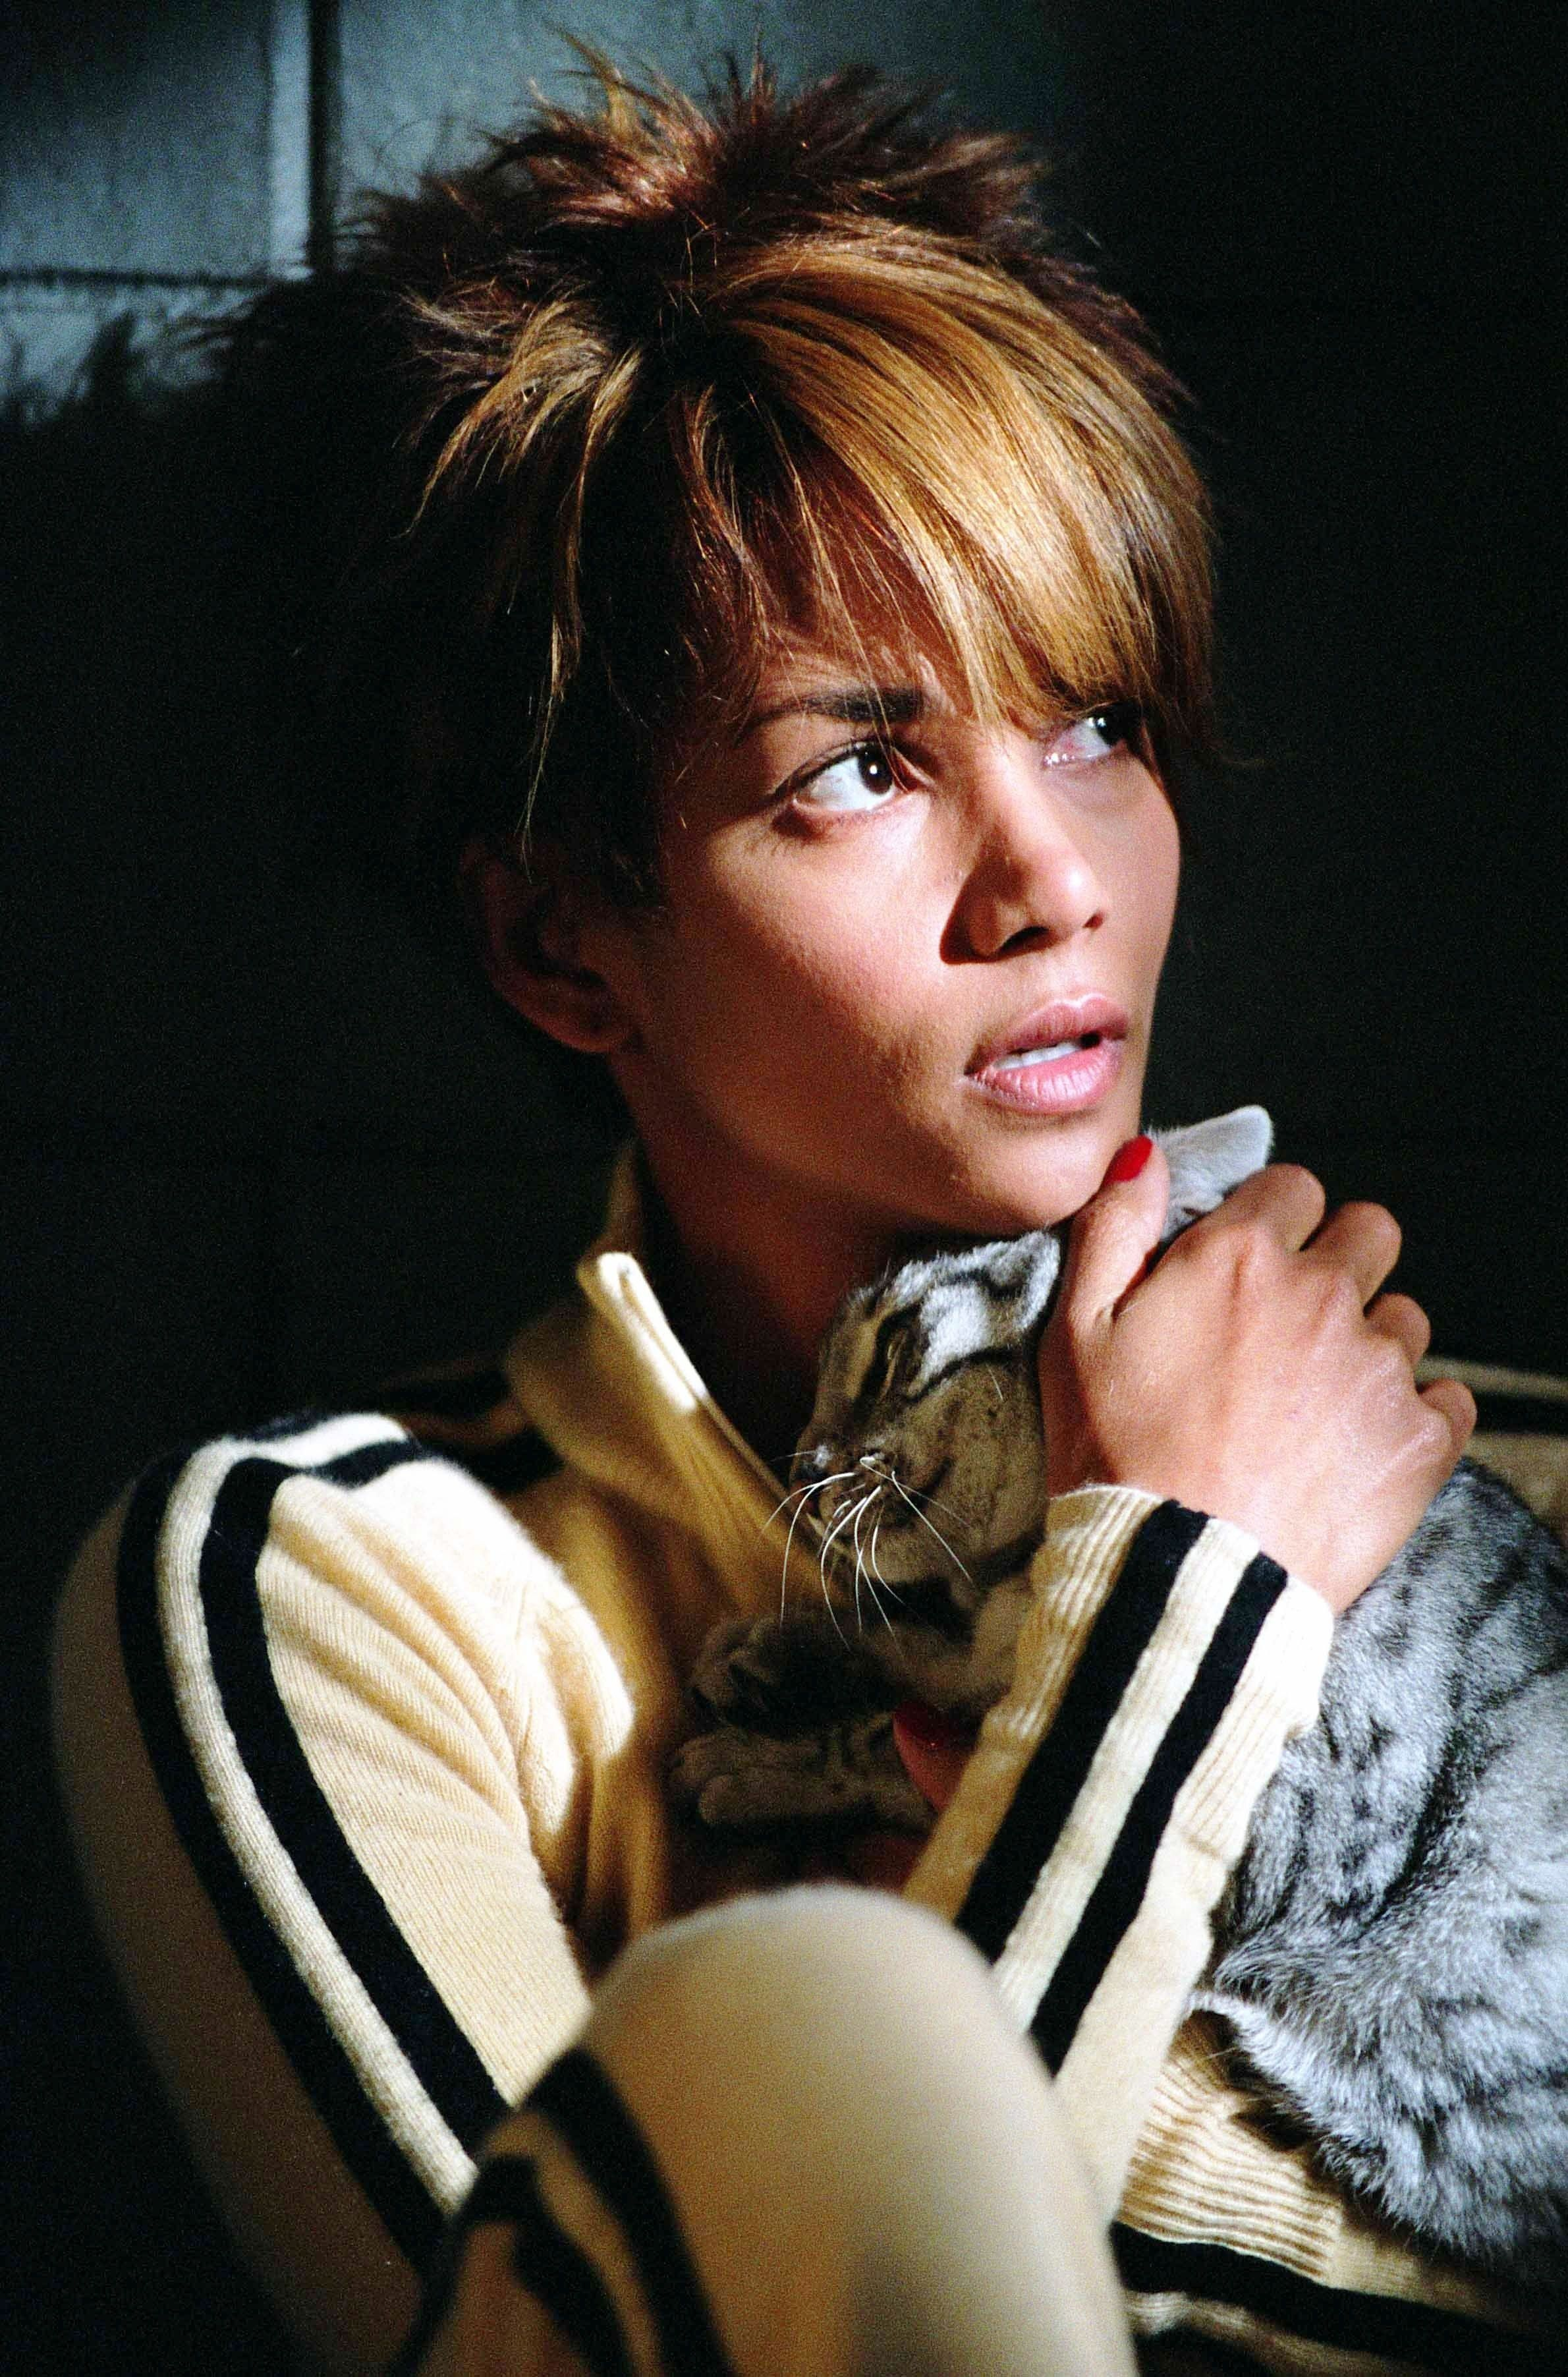 """catwoman"""" movie still, 2004. 